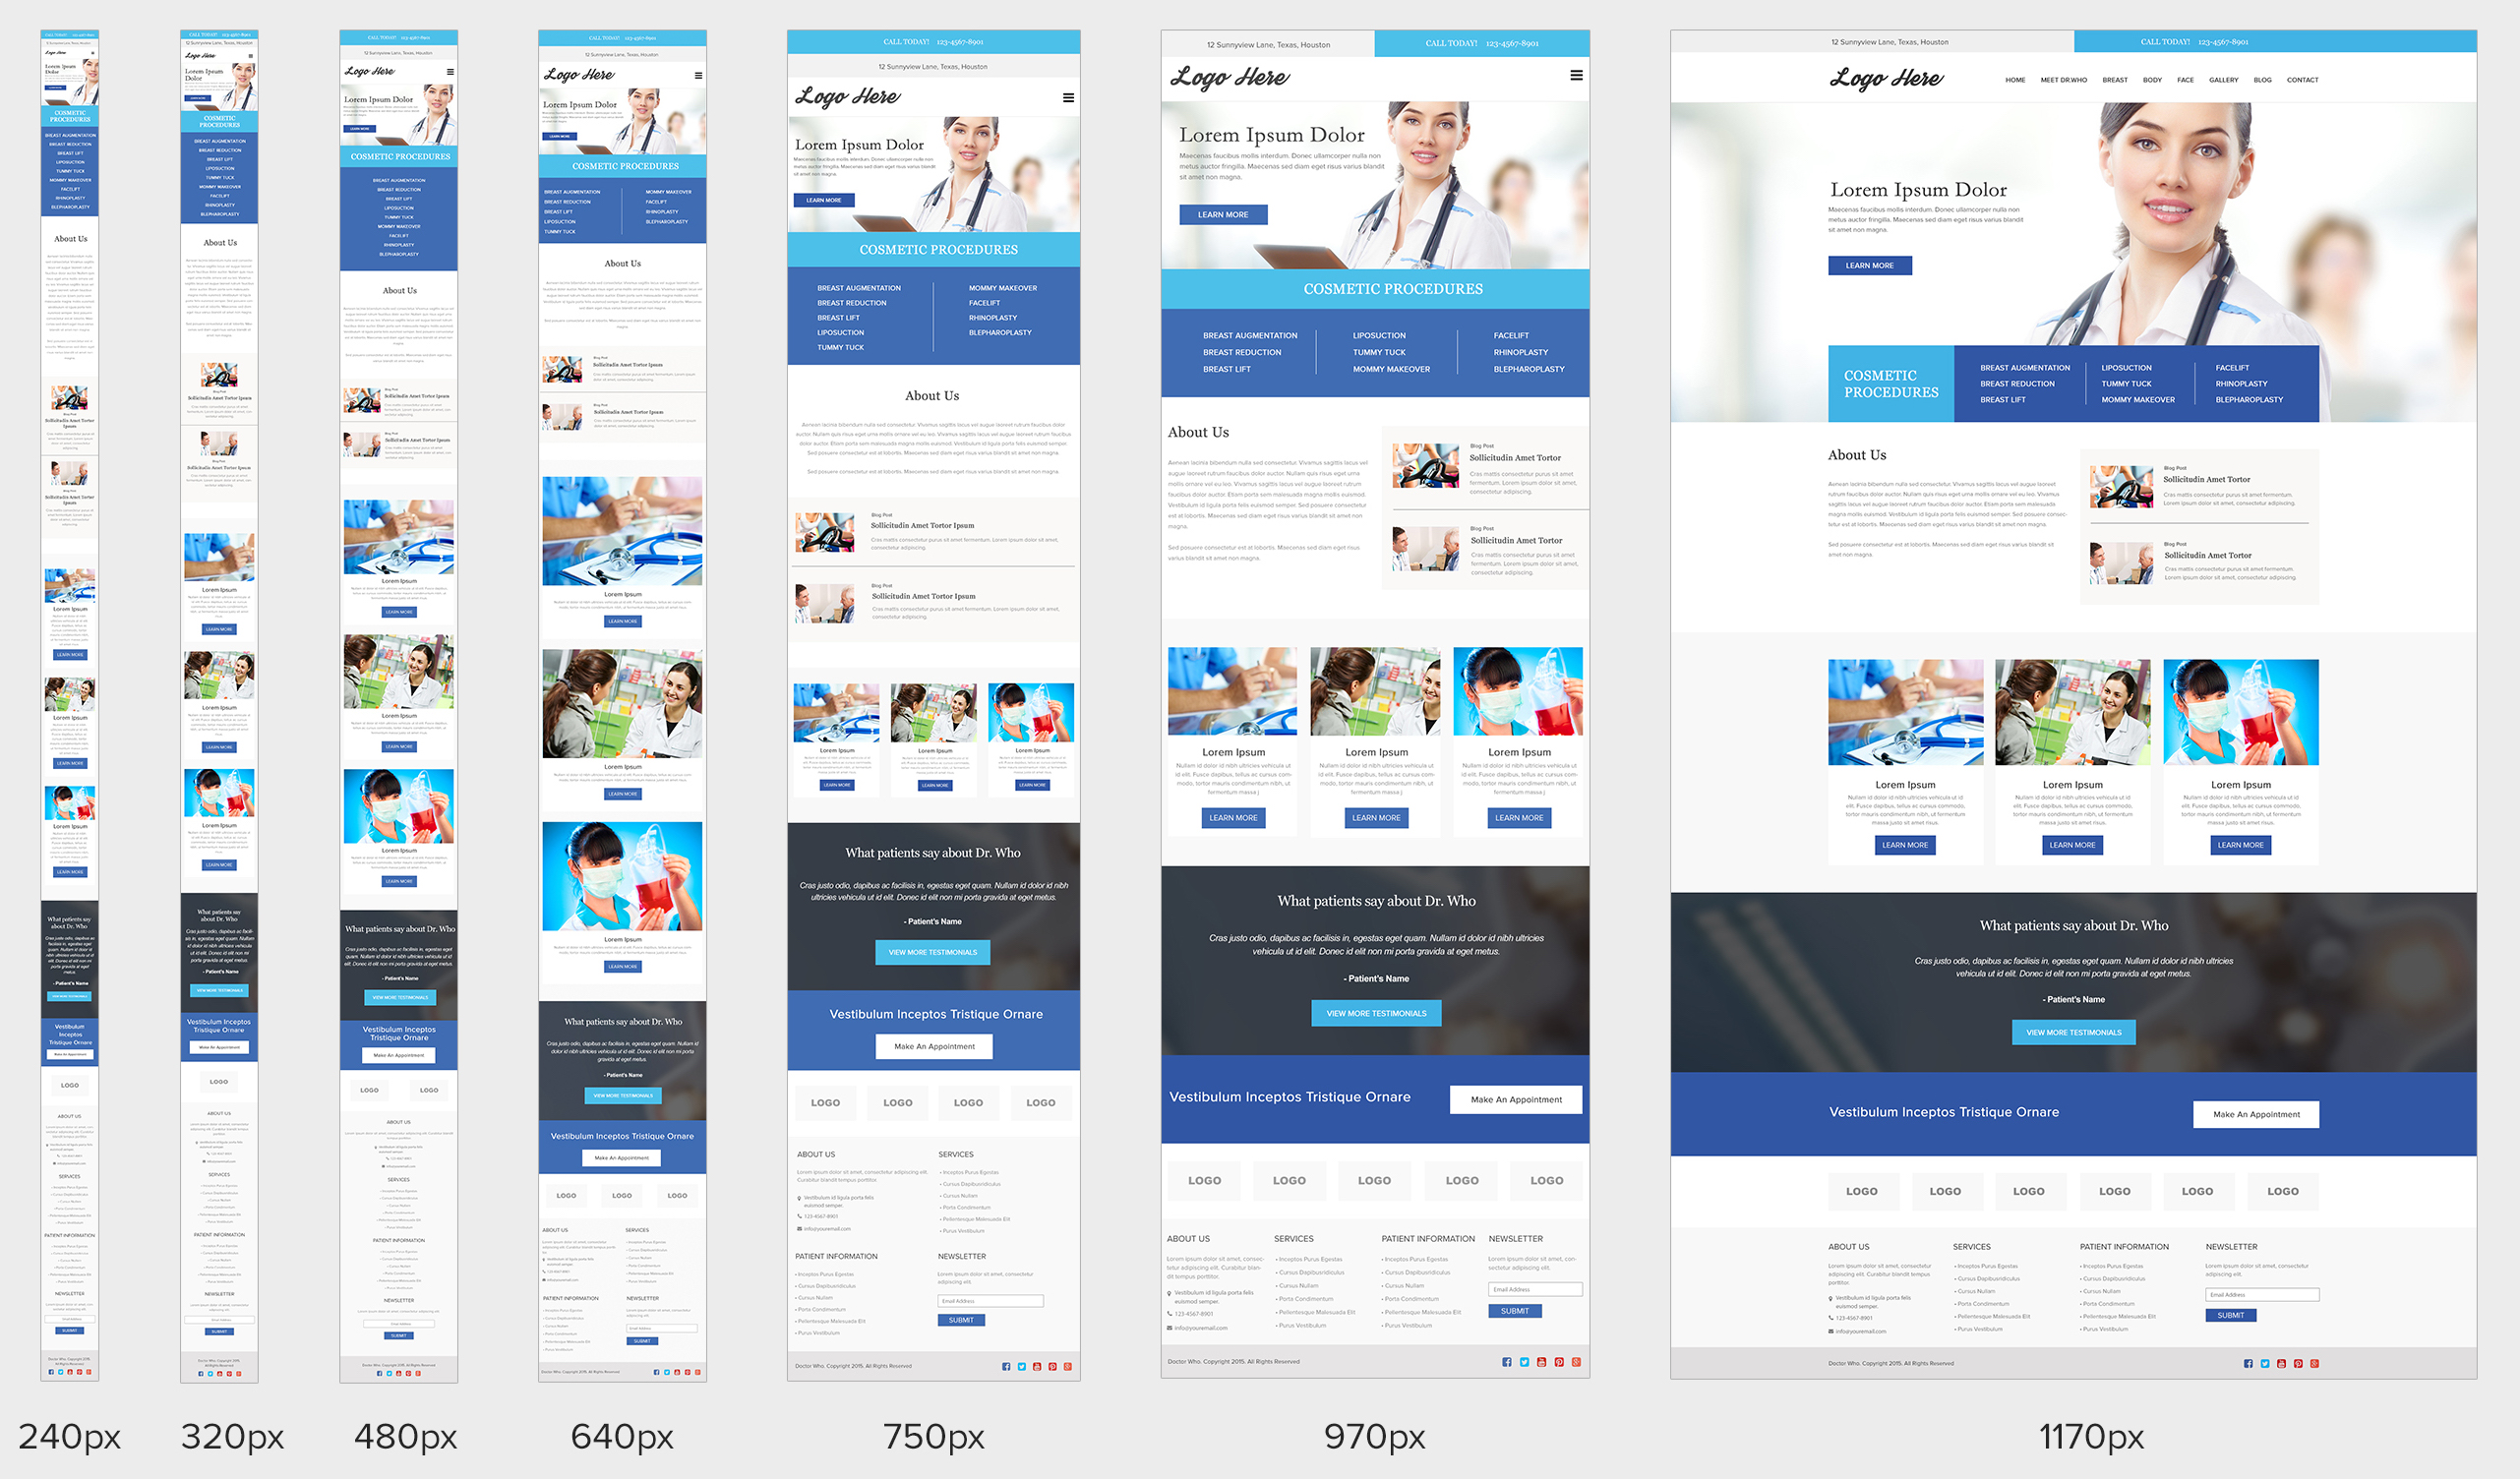 Responsive website design with all breakpoints